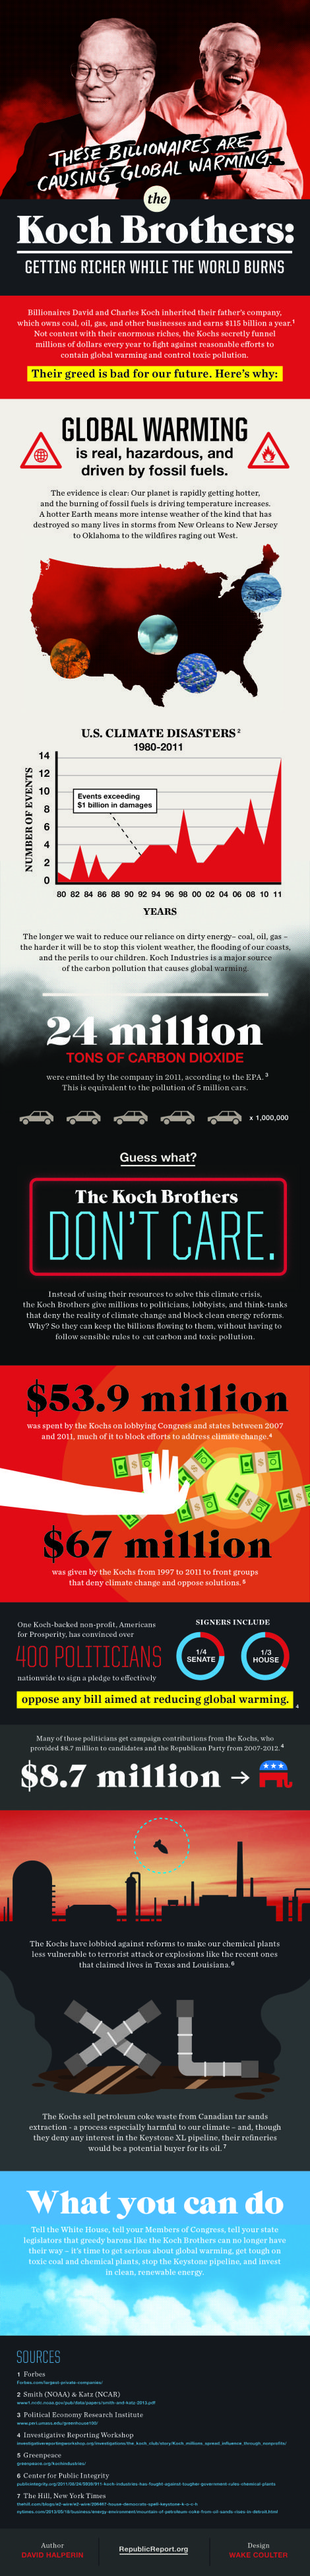 Koch Brothers - Getting richer while the world burns.